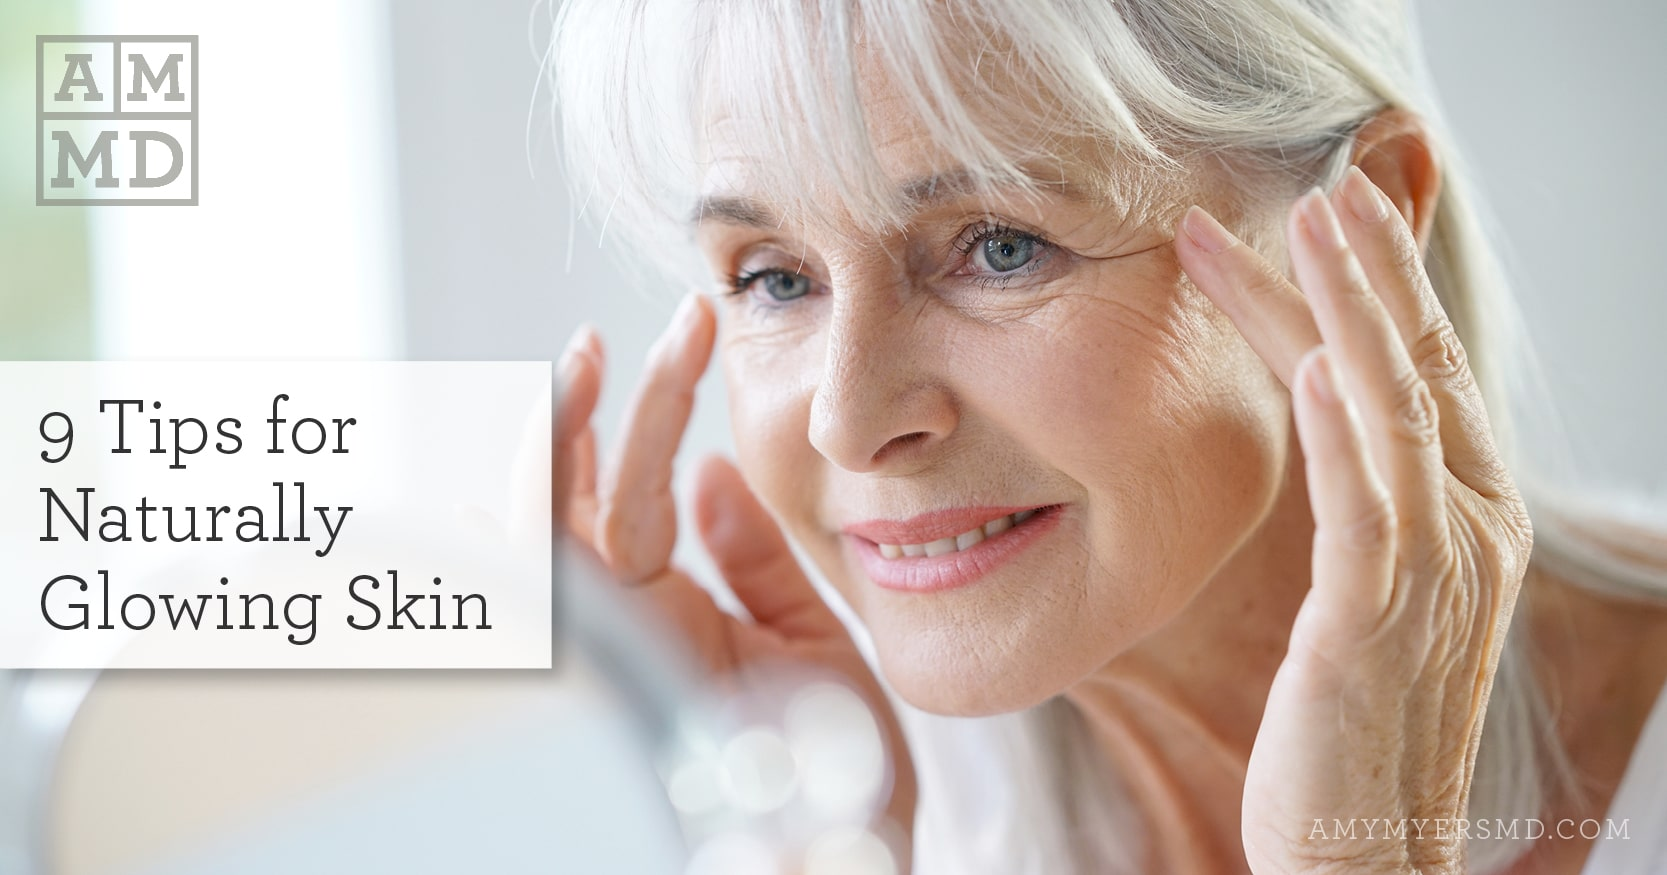 9 Tips for Naturally Glowing Skin - A Woman Applying Face Cream - Featured Image - Amy Myers MD